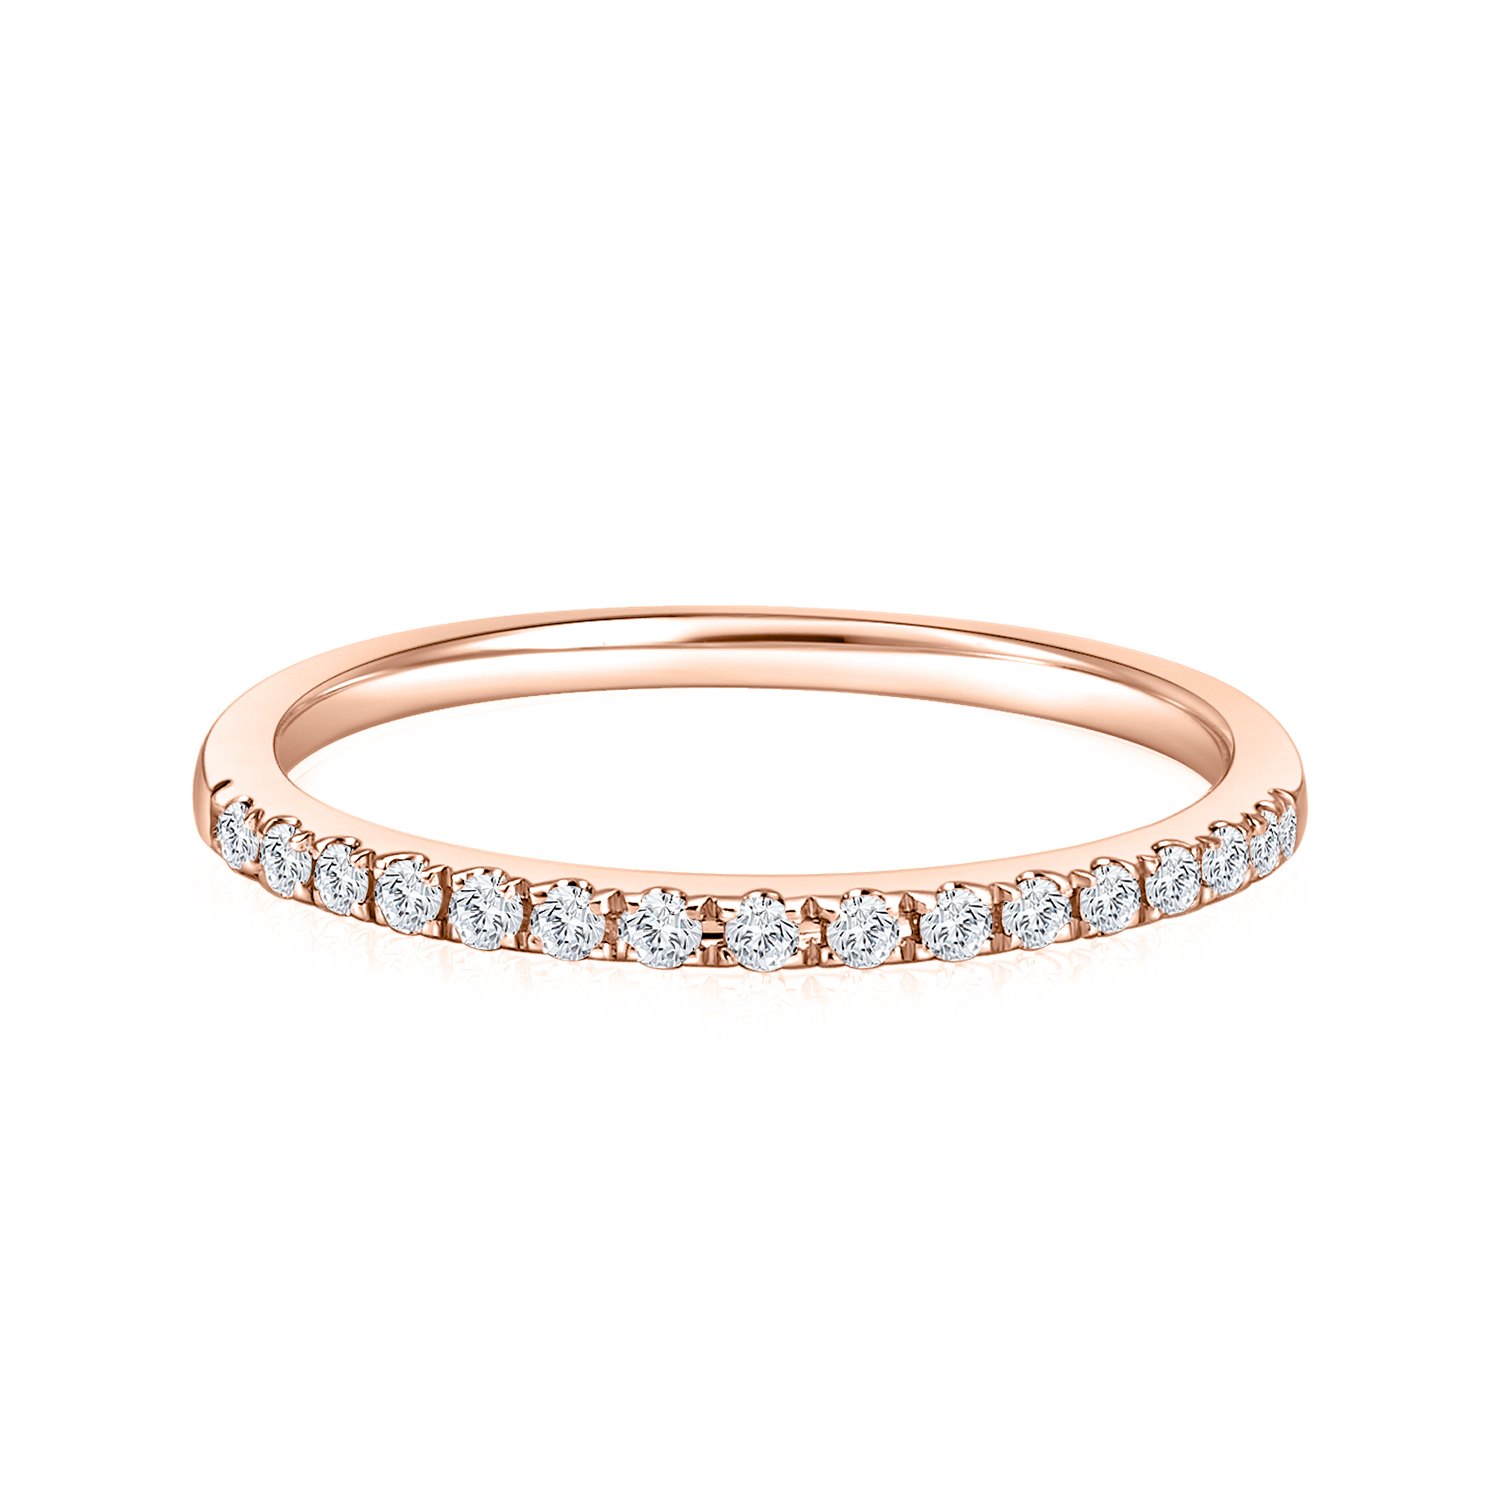 Starry Evon Rose Gold Diamond Ring